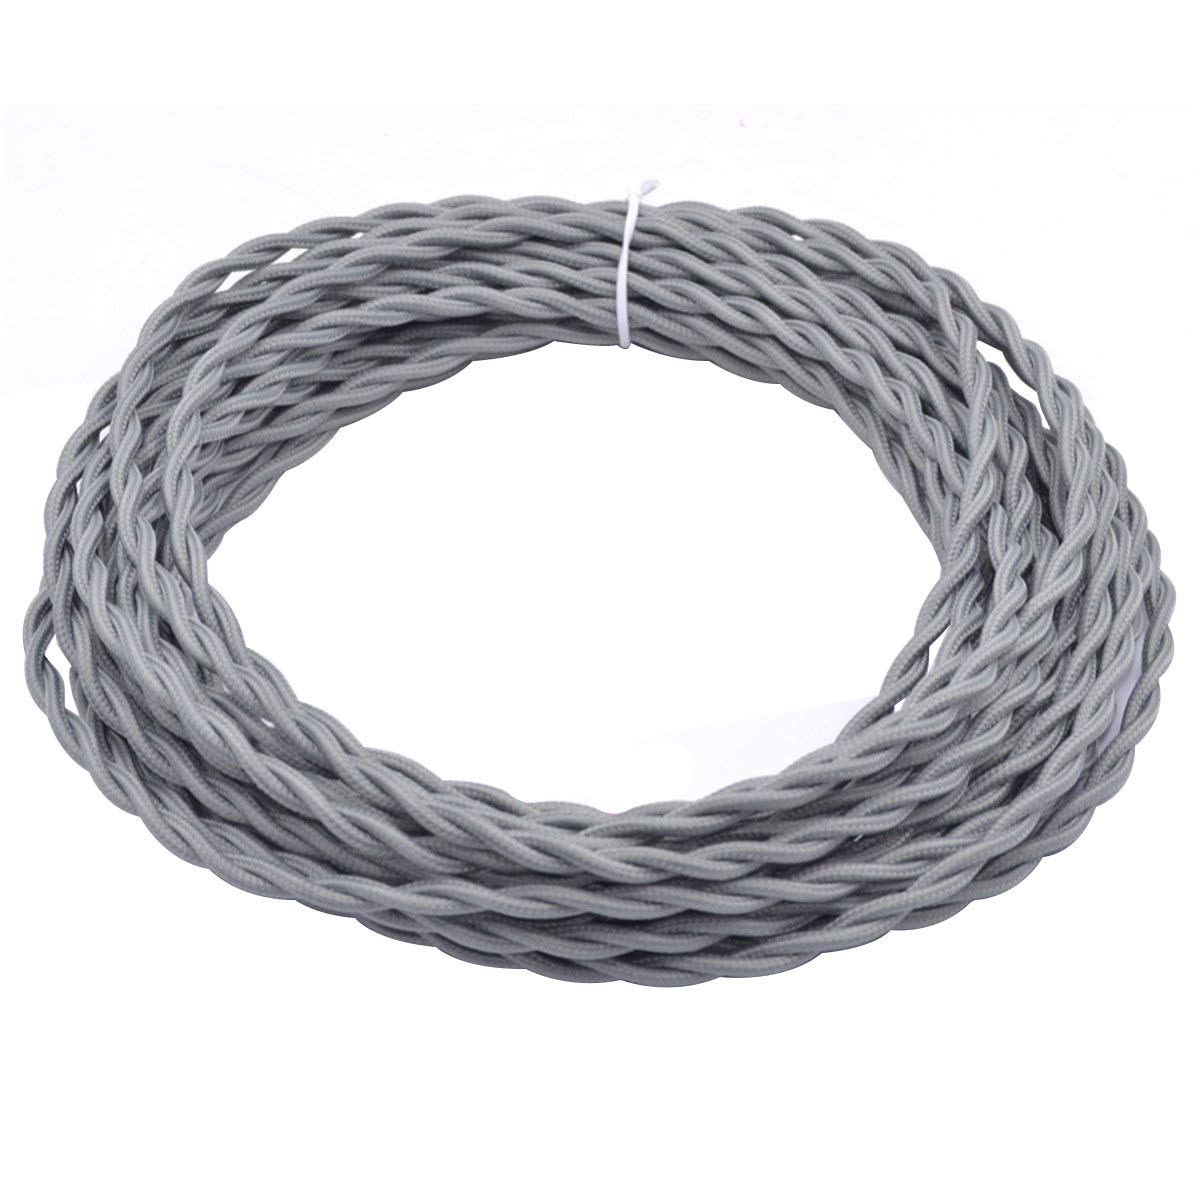 Best Rated In Electrical Wire Helpful Customer Reviews Lamp Wiring Black White 328ft Grey Twisted 18 2 Rayon Covered Wirehession Antique Industrial Cloth